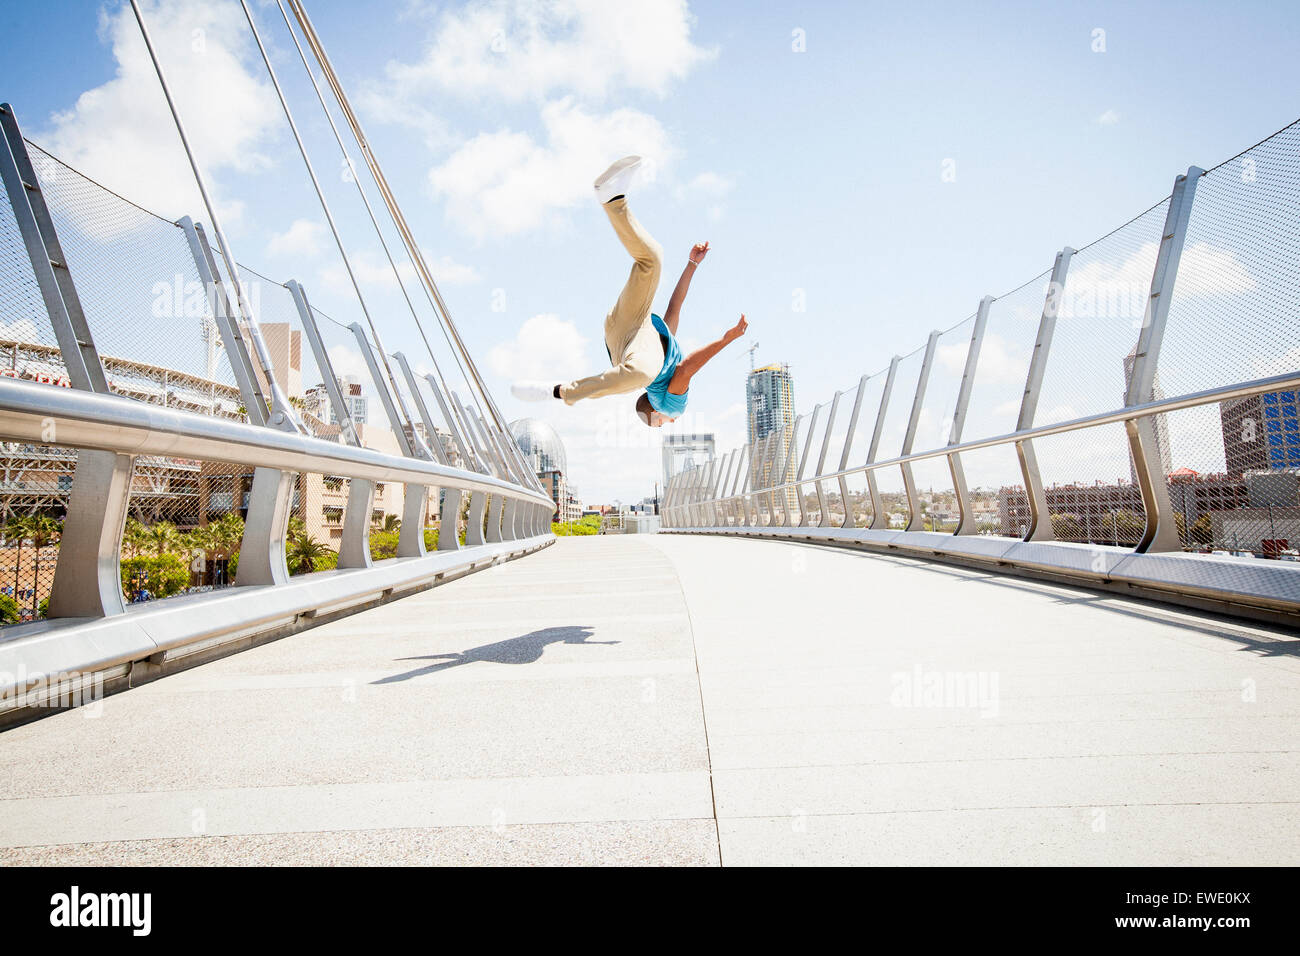 Young man somersaulting on street parcour parkour - Stock Image